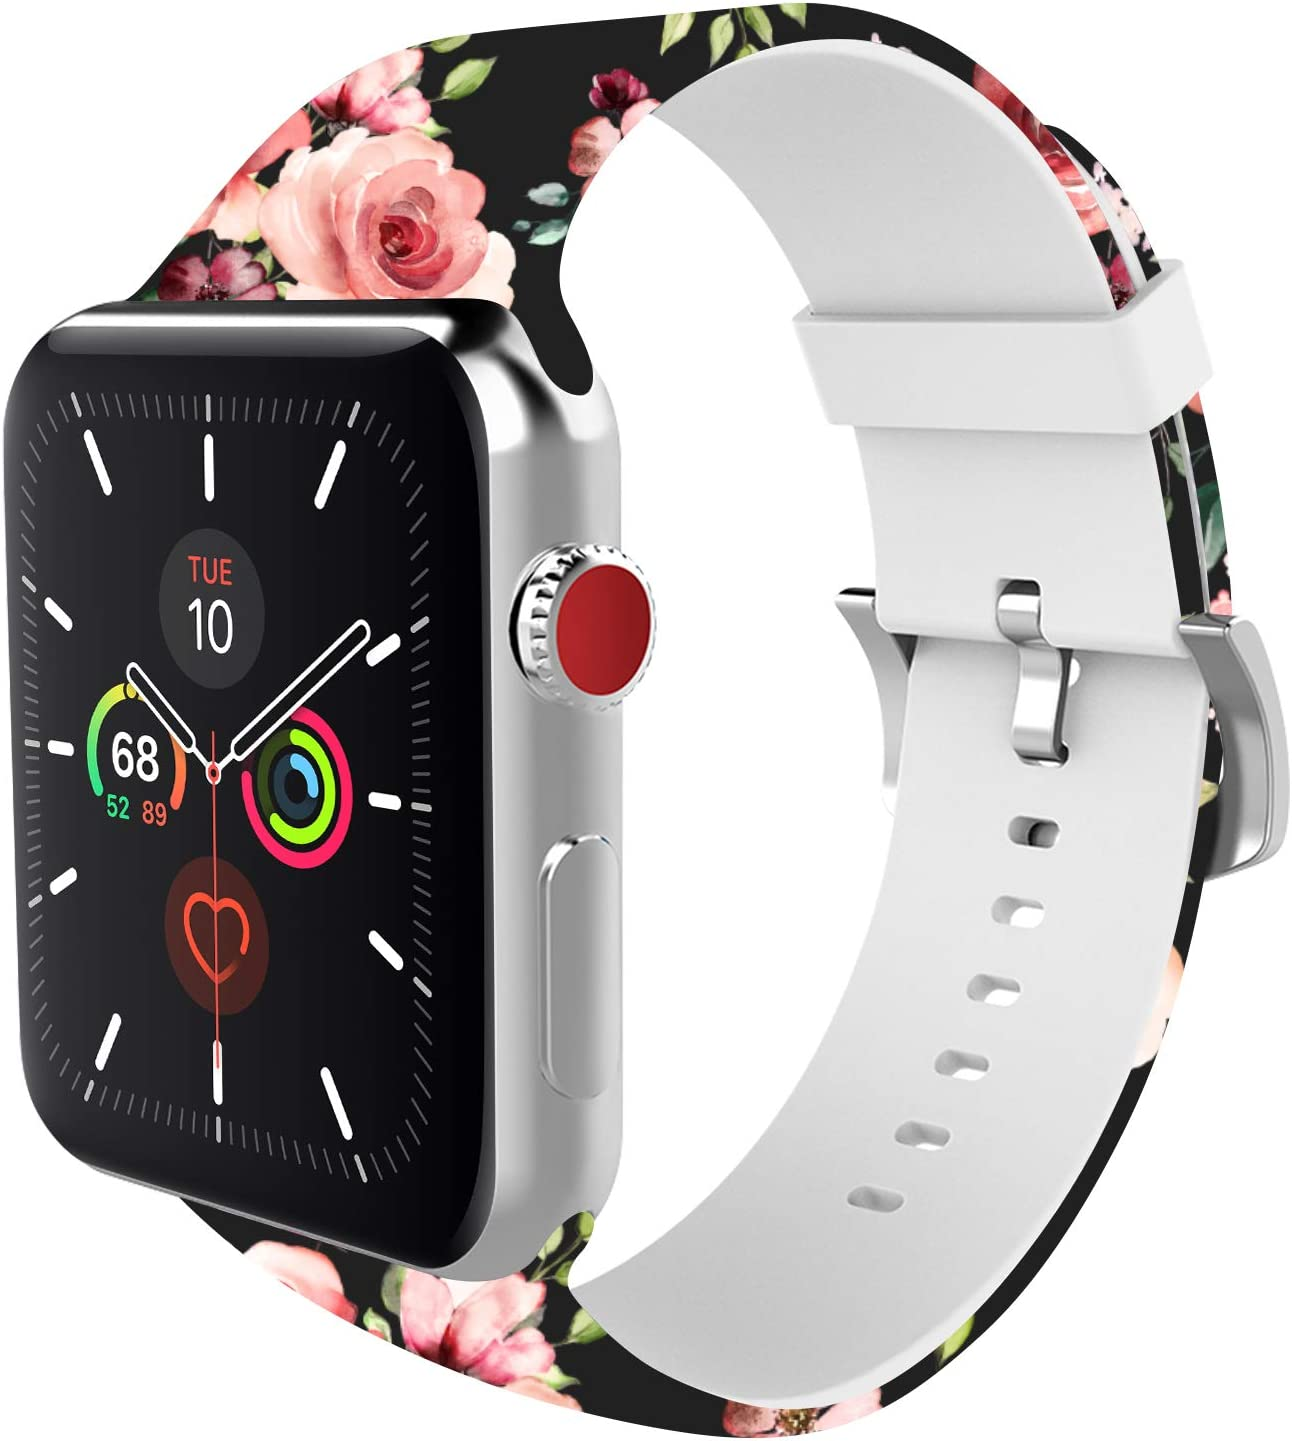 BMBEAR Sports Band Floral Bands Compatible with Apple Watch Band 38mm 40mm Soft Silicone Fadeless Pattern Printed Replacement Sport Band for iWacth Series 6 5 4 3 2 1 Black Rose